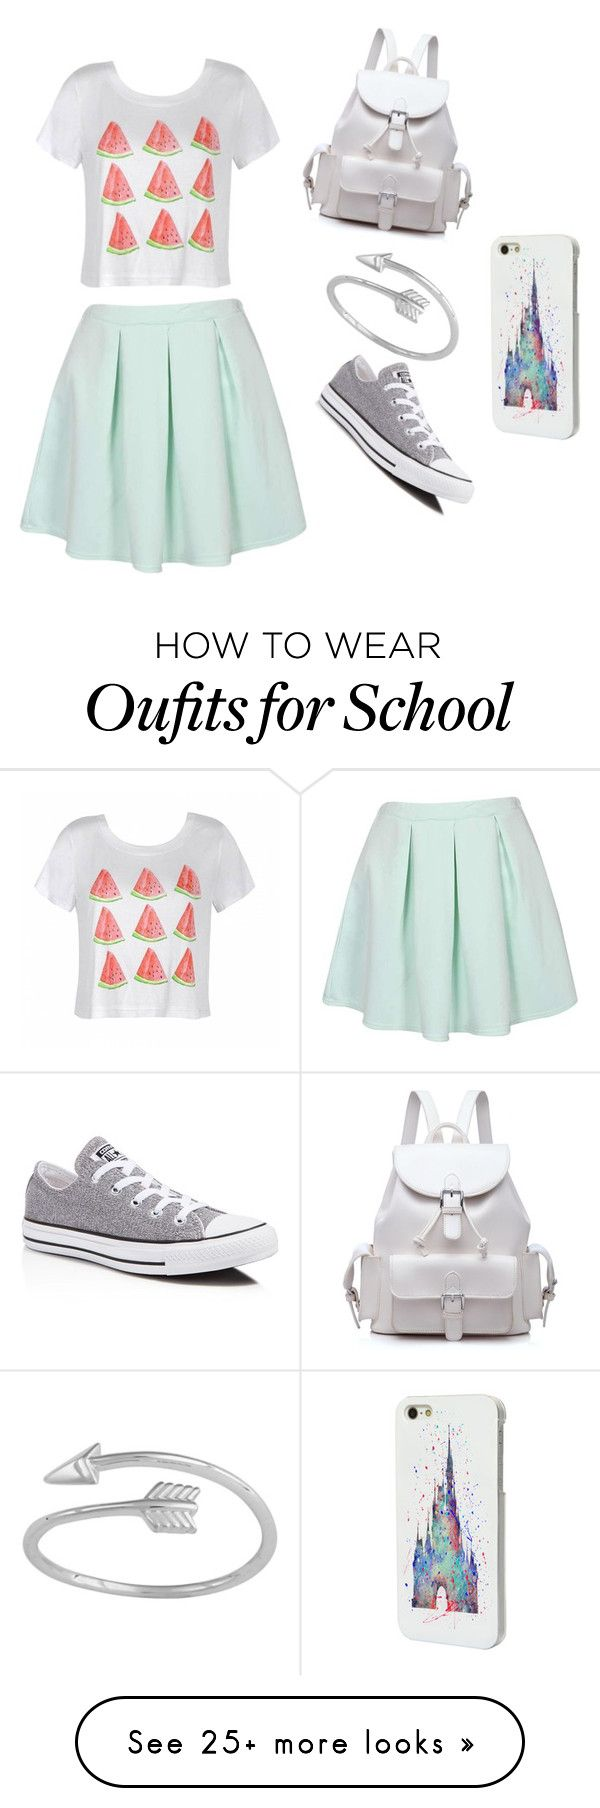 """first day of school"" by kjkjmcra on Polyvore featuring Ally Fashion, Converse and Disney"